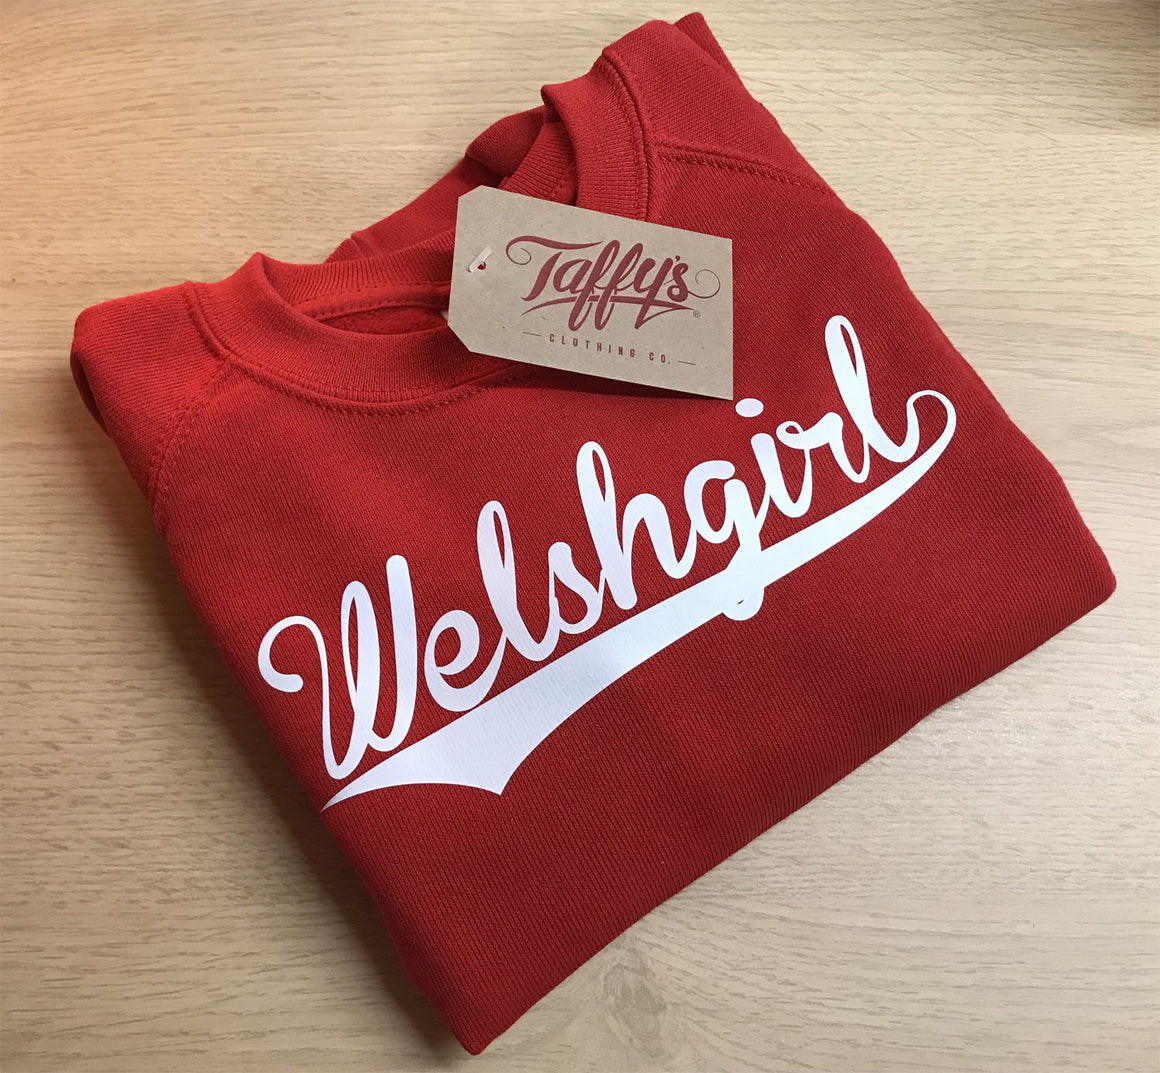 Welsh Girl - Kids College Sweatshirt